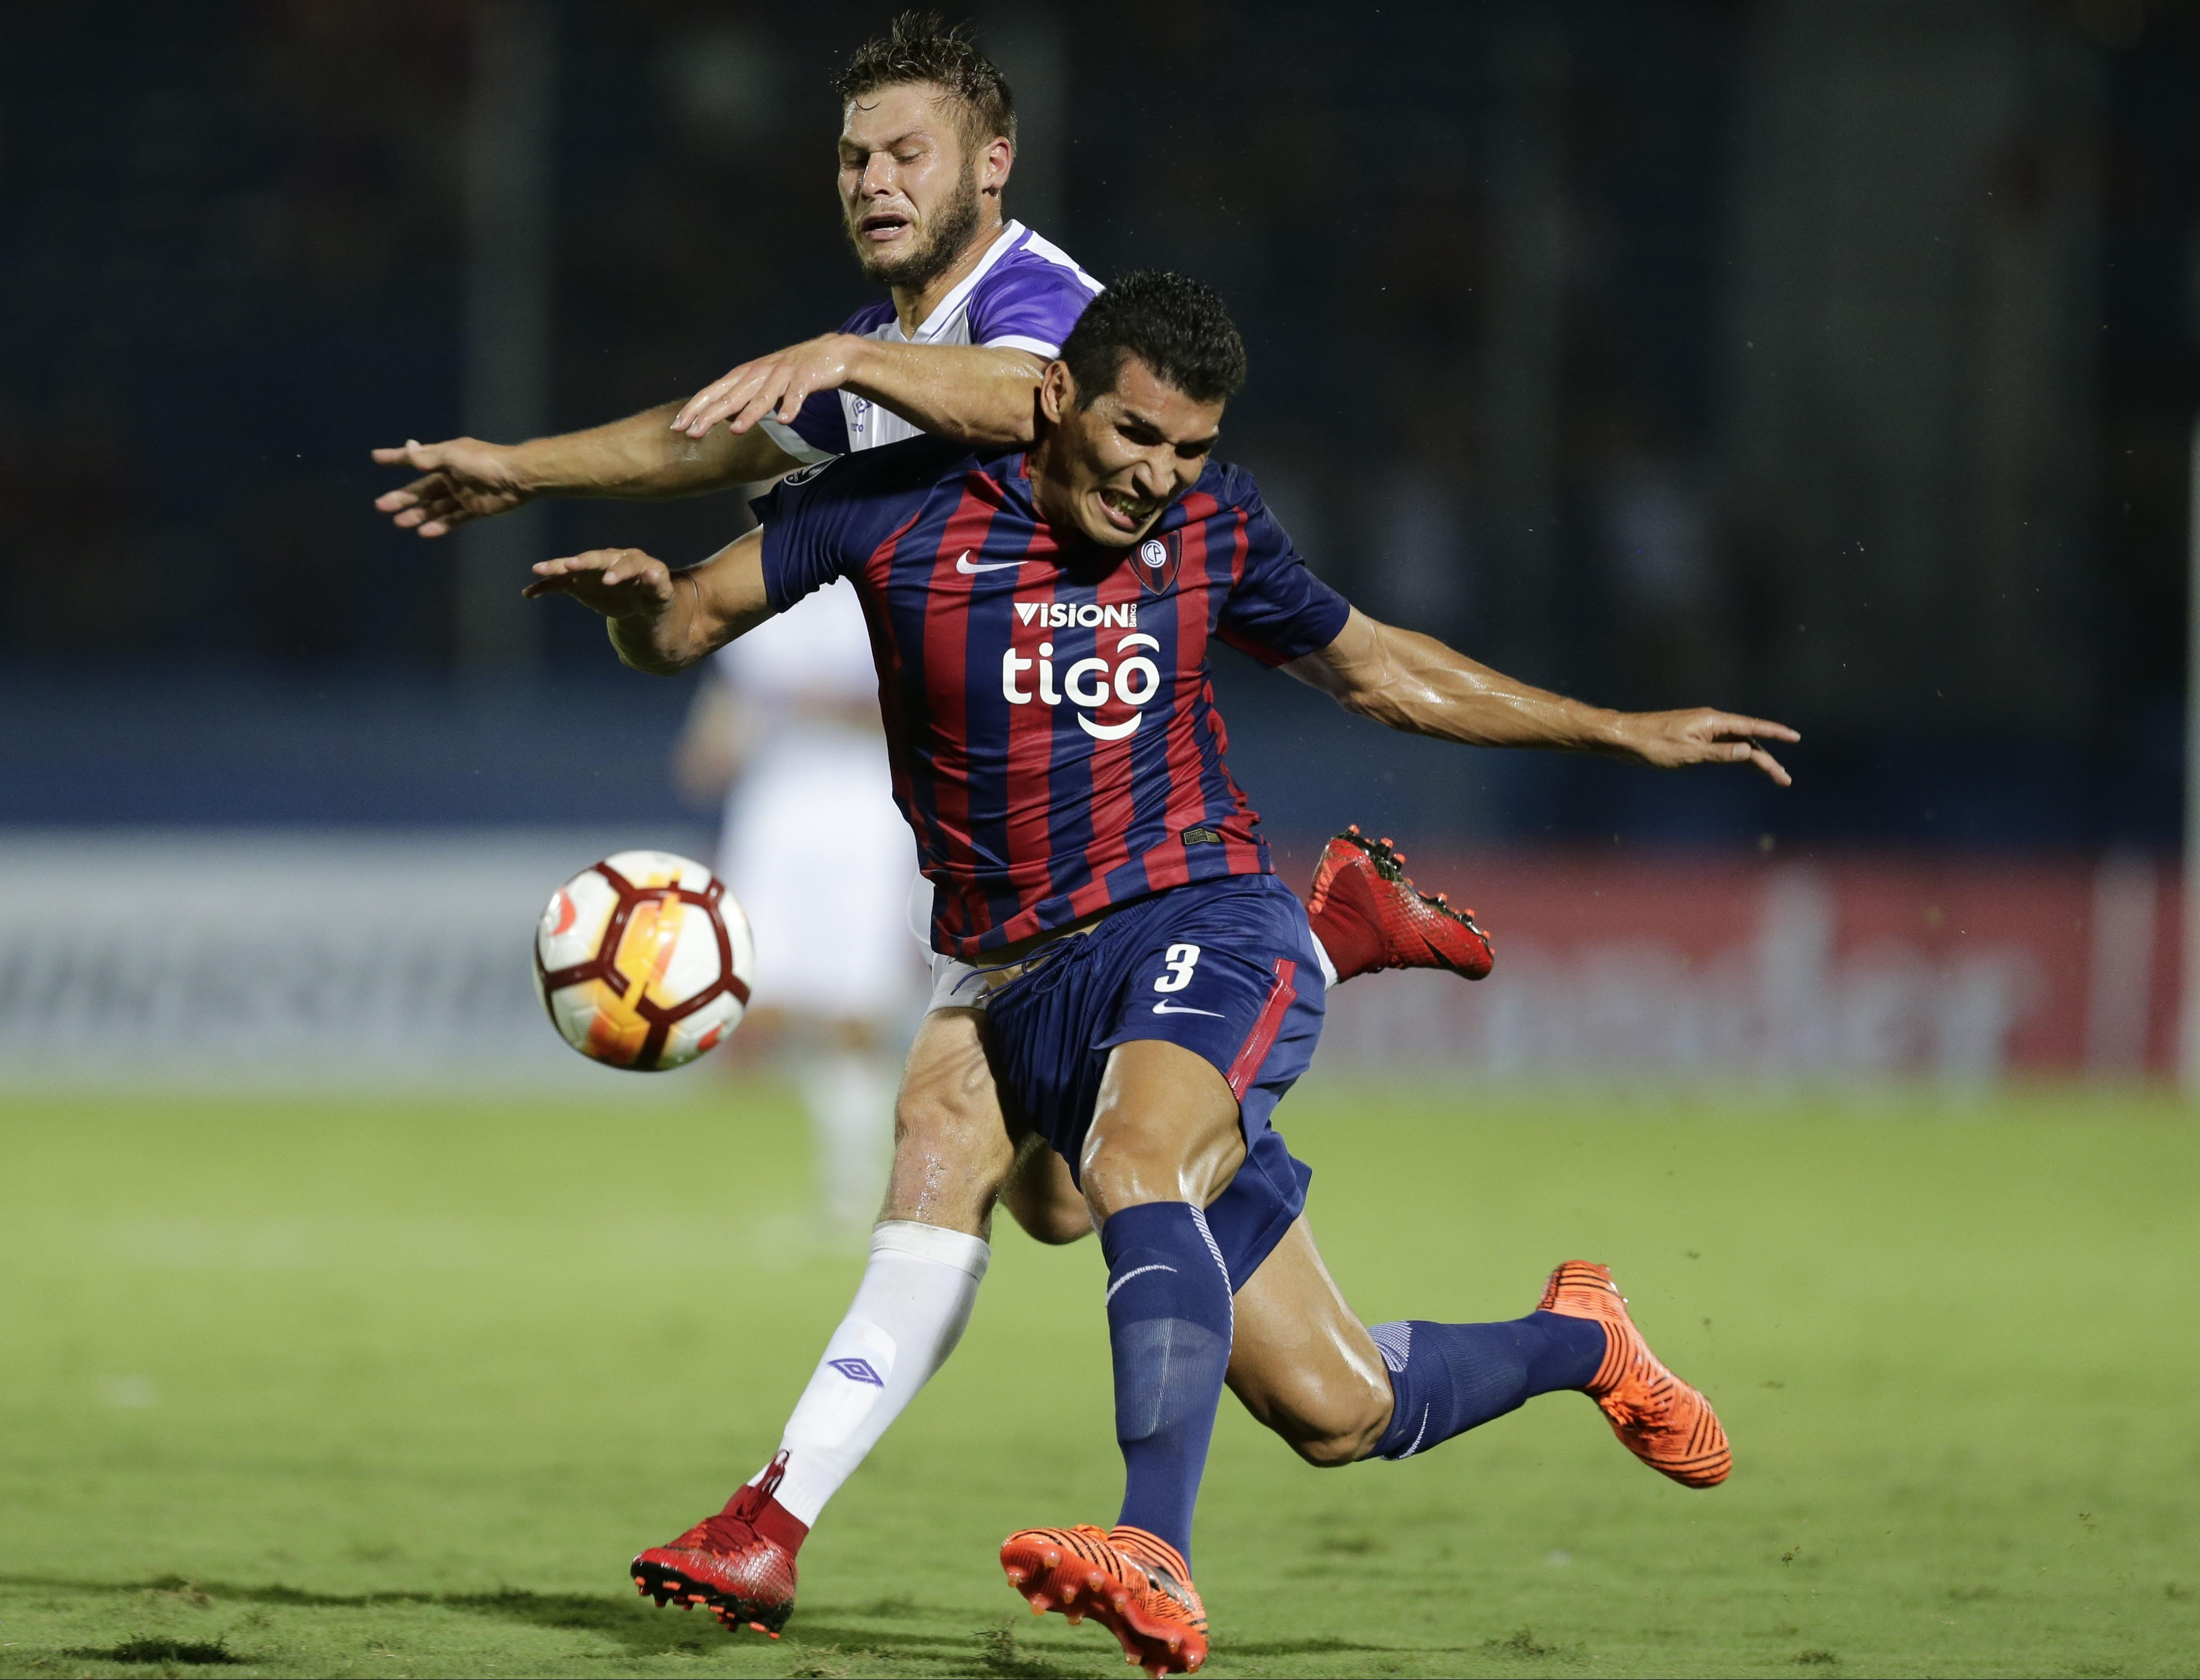 German Rivero (back) of Uruguay's Defensor Sporting fights for the ball with Cristian Insaurralde of Paraguay's Cerro Porteno during a Copa Libertadores Soccer game in Asuncion, Paraguay on Tuesday.